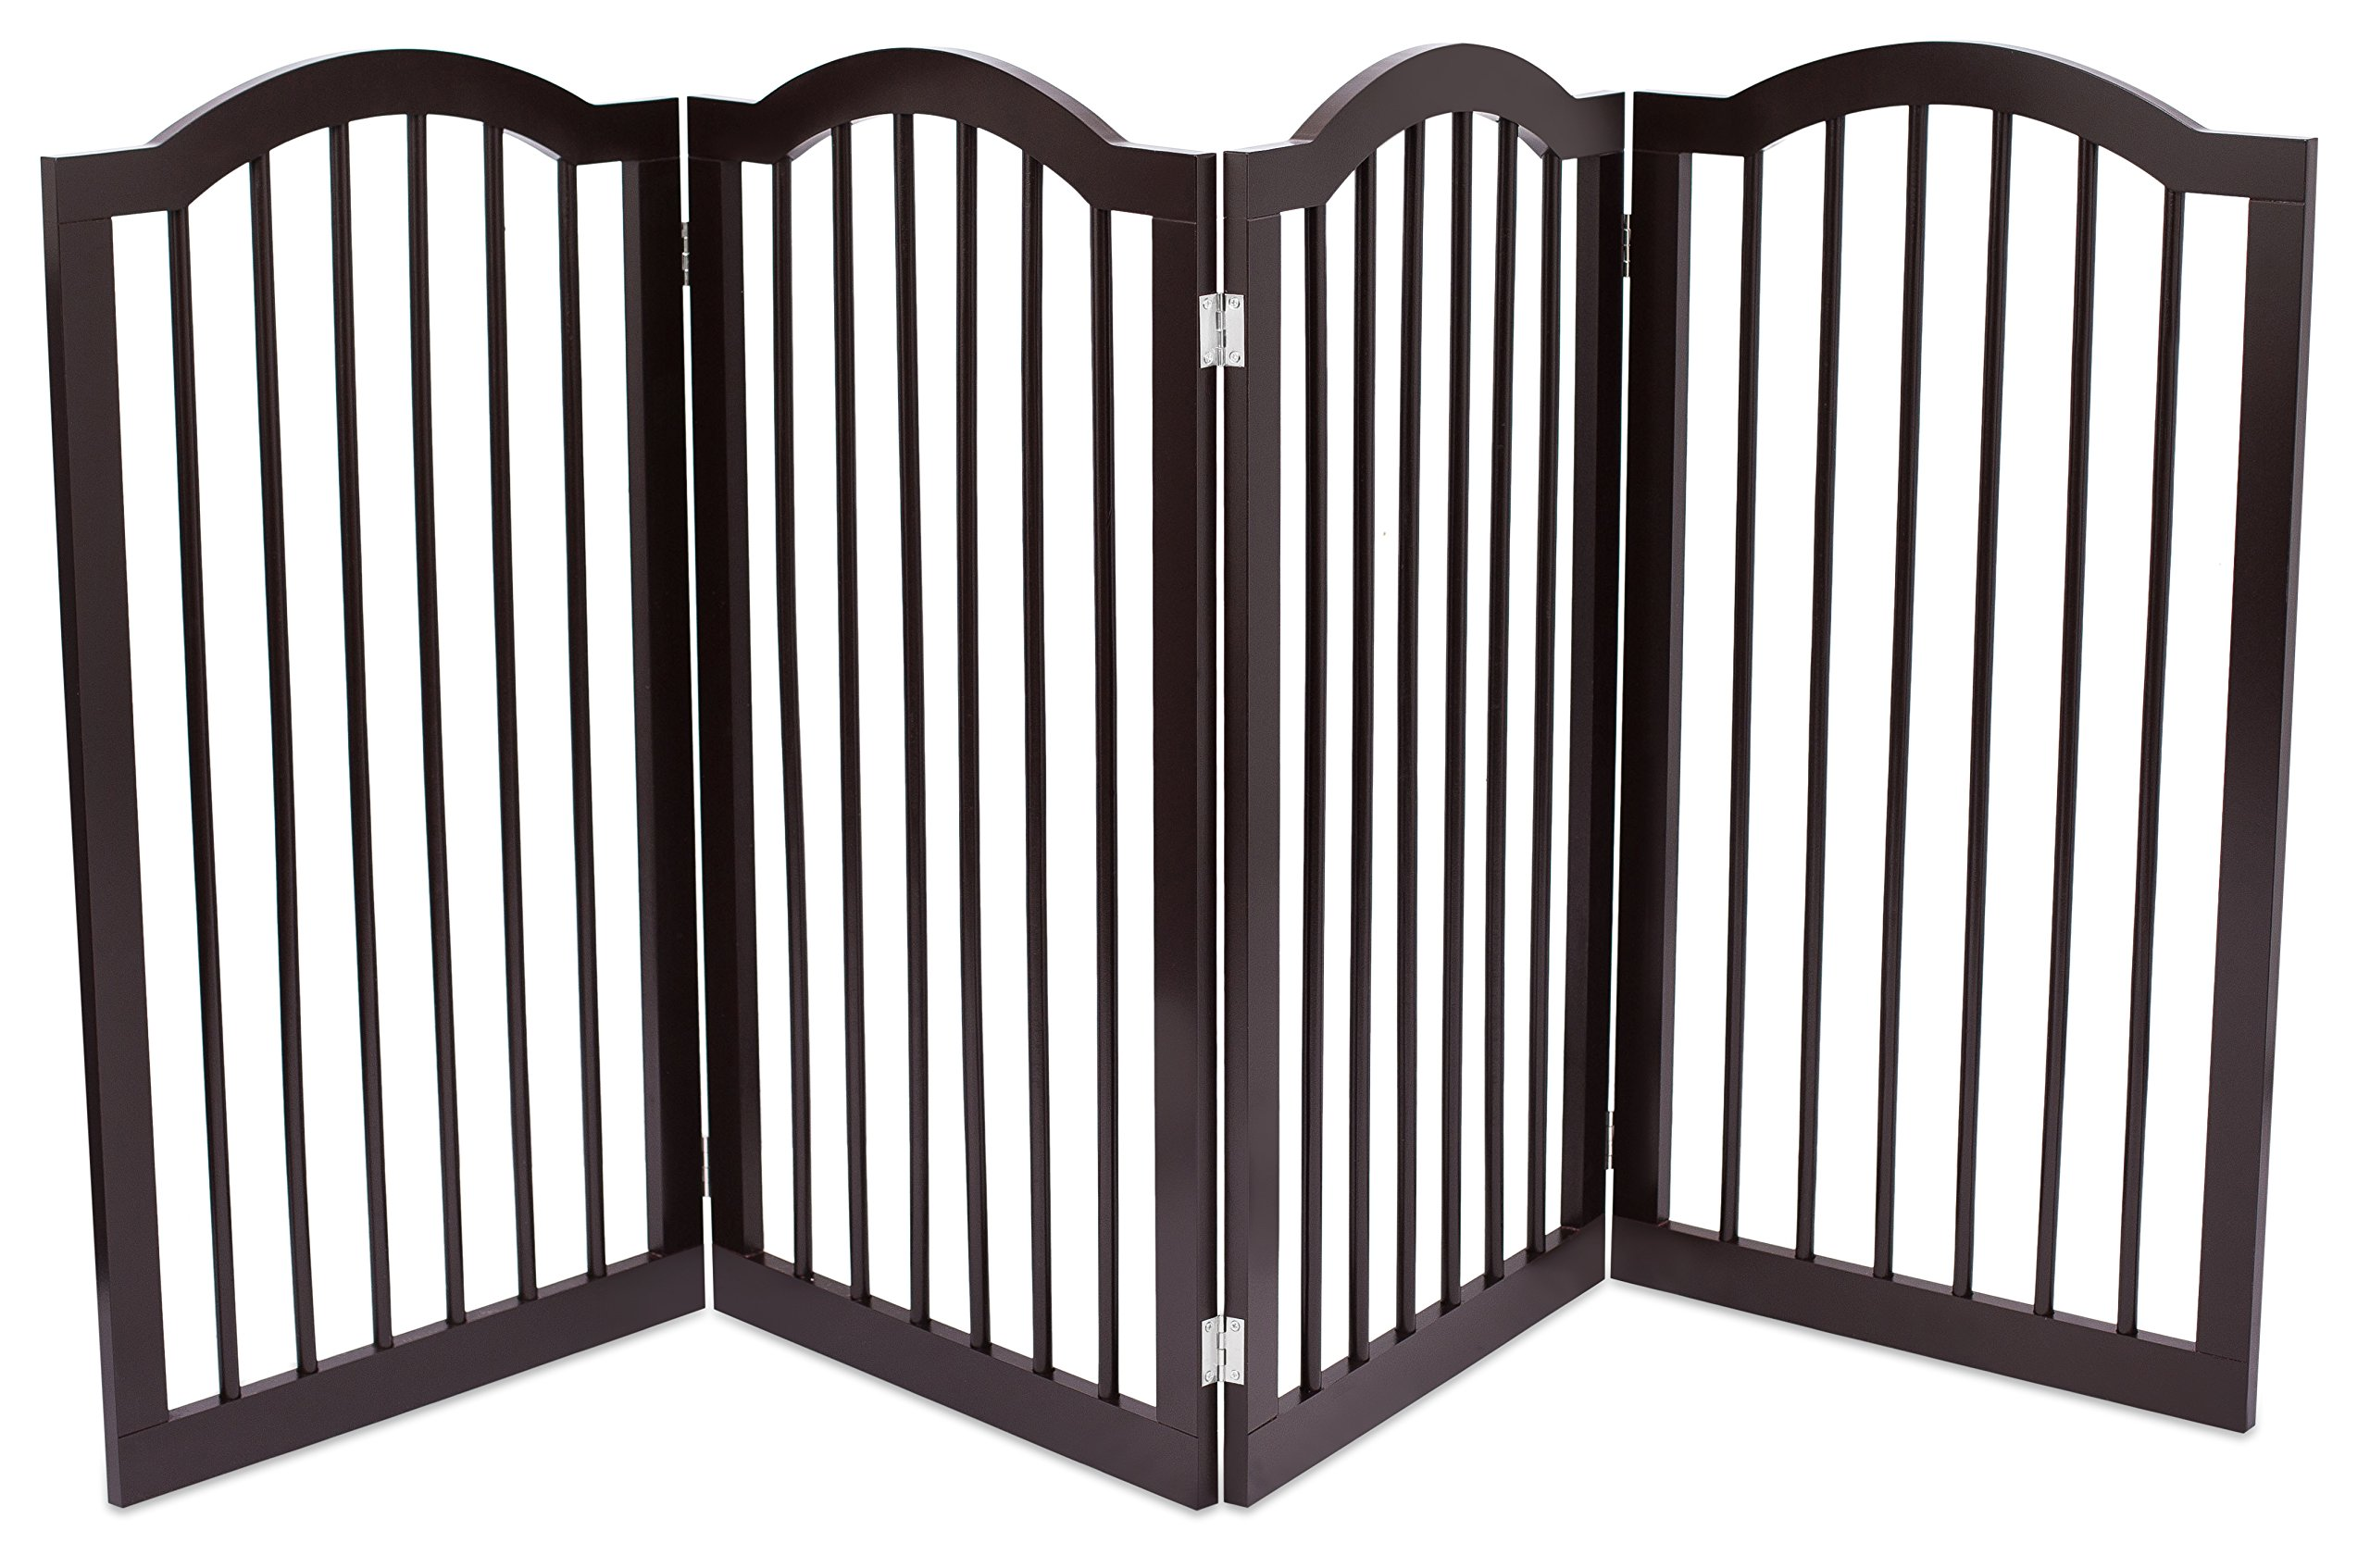 Internet's Best Pet Gate with Arched Top - 4 Panel - 36 Inch Tall Fence - Free Standing Folding Z Shape Indoor Doorway Hall Stairs Dog Puppy Gate - Fully Assembled - Espresso - MDF by Internet's Best